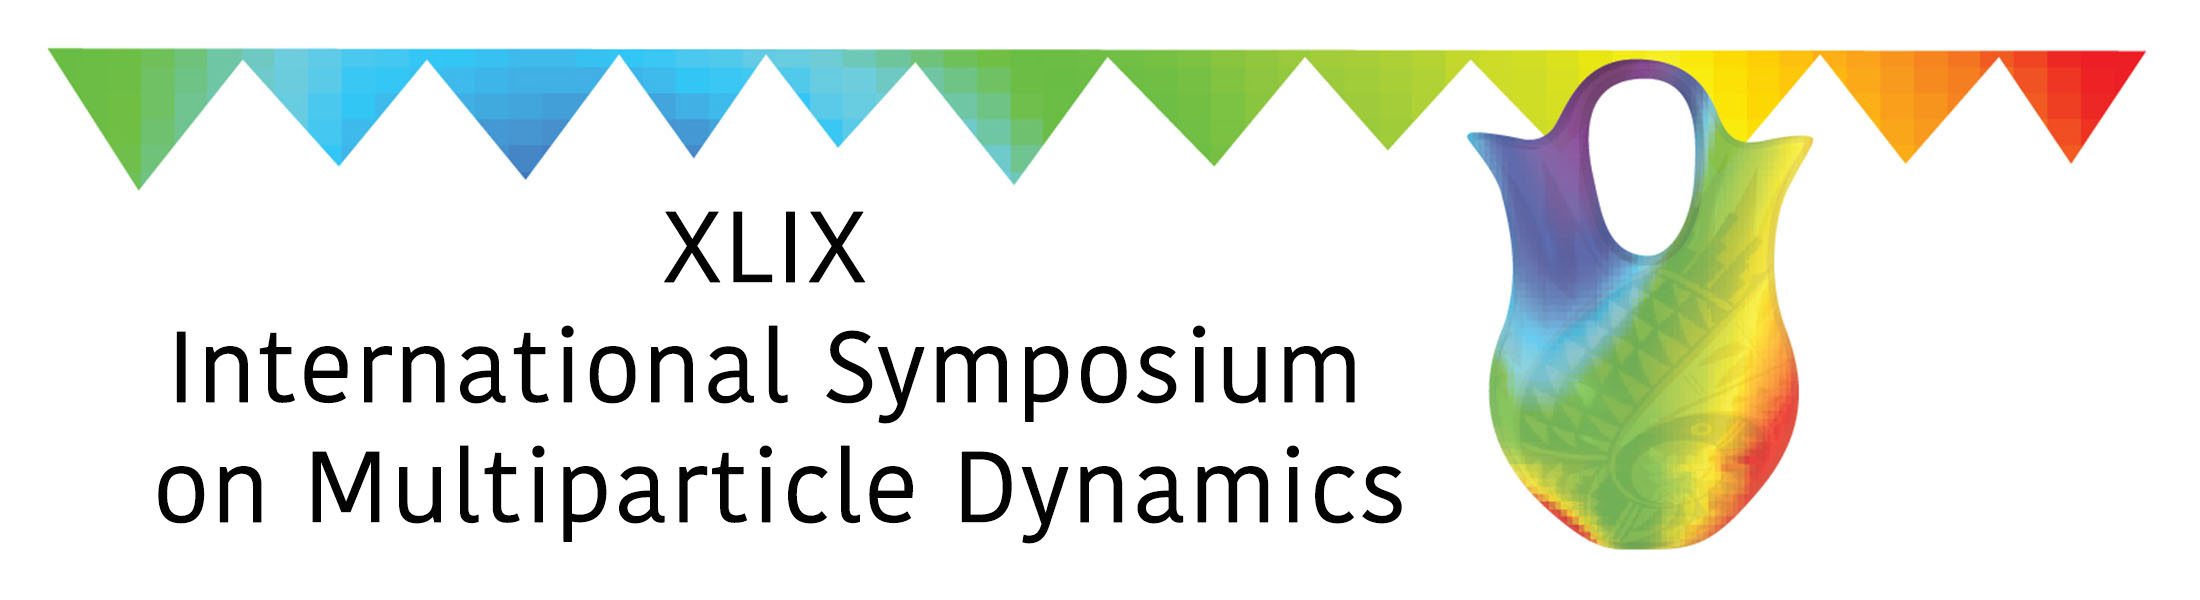 XLIX International Symposium on Multiparticle Dynamics